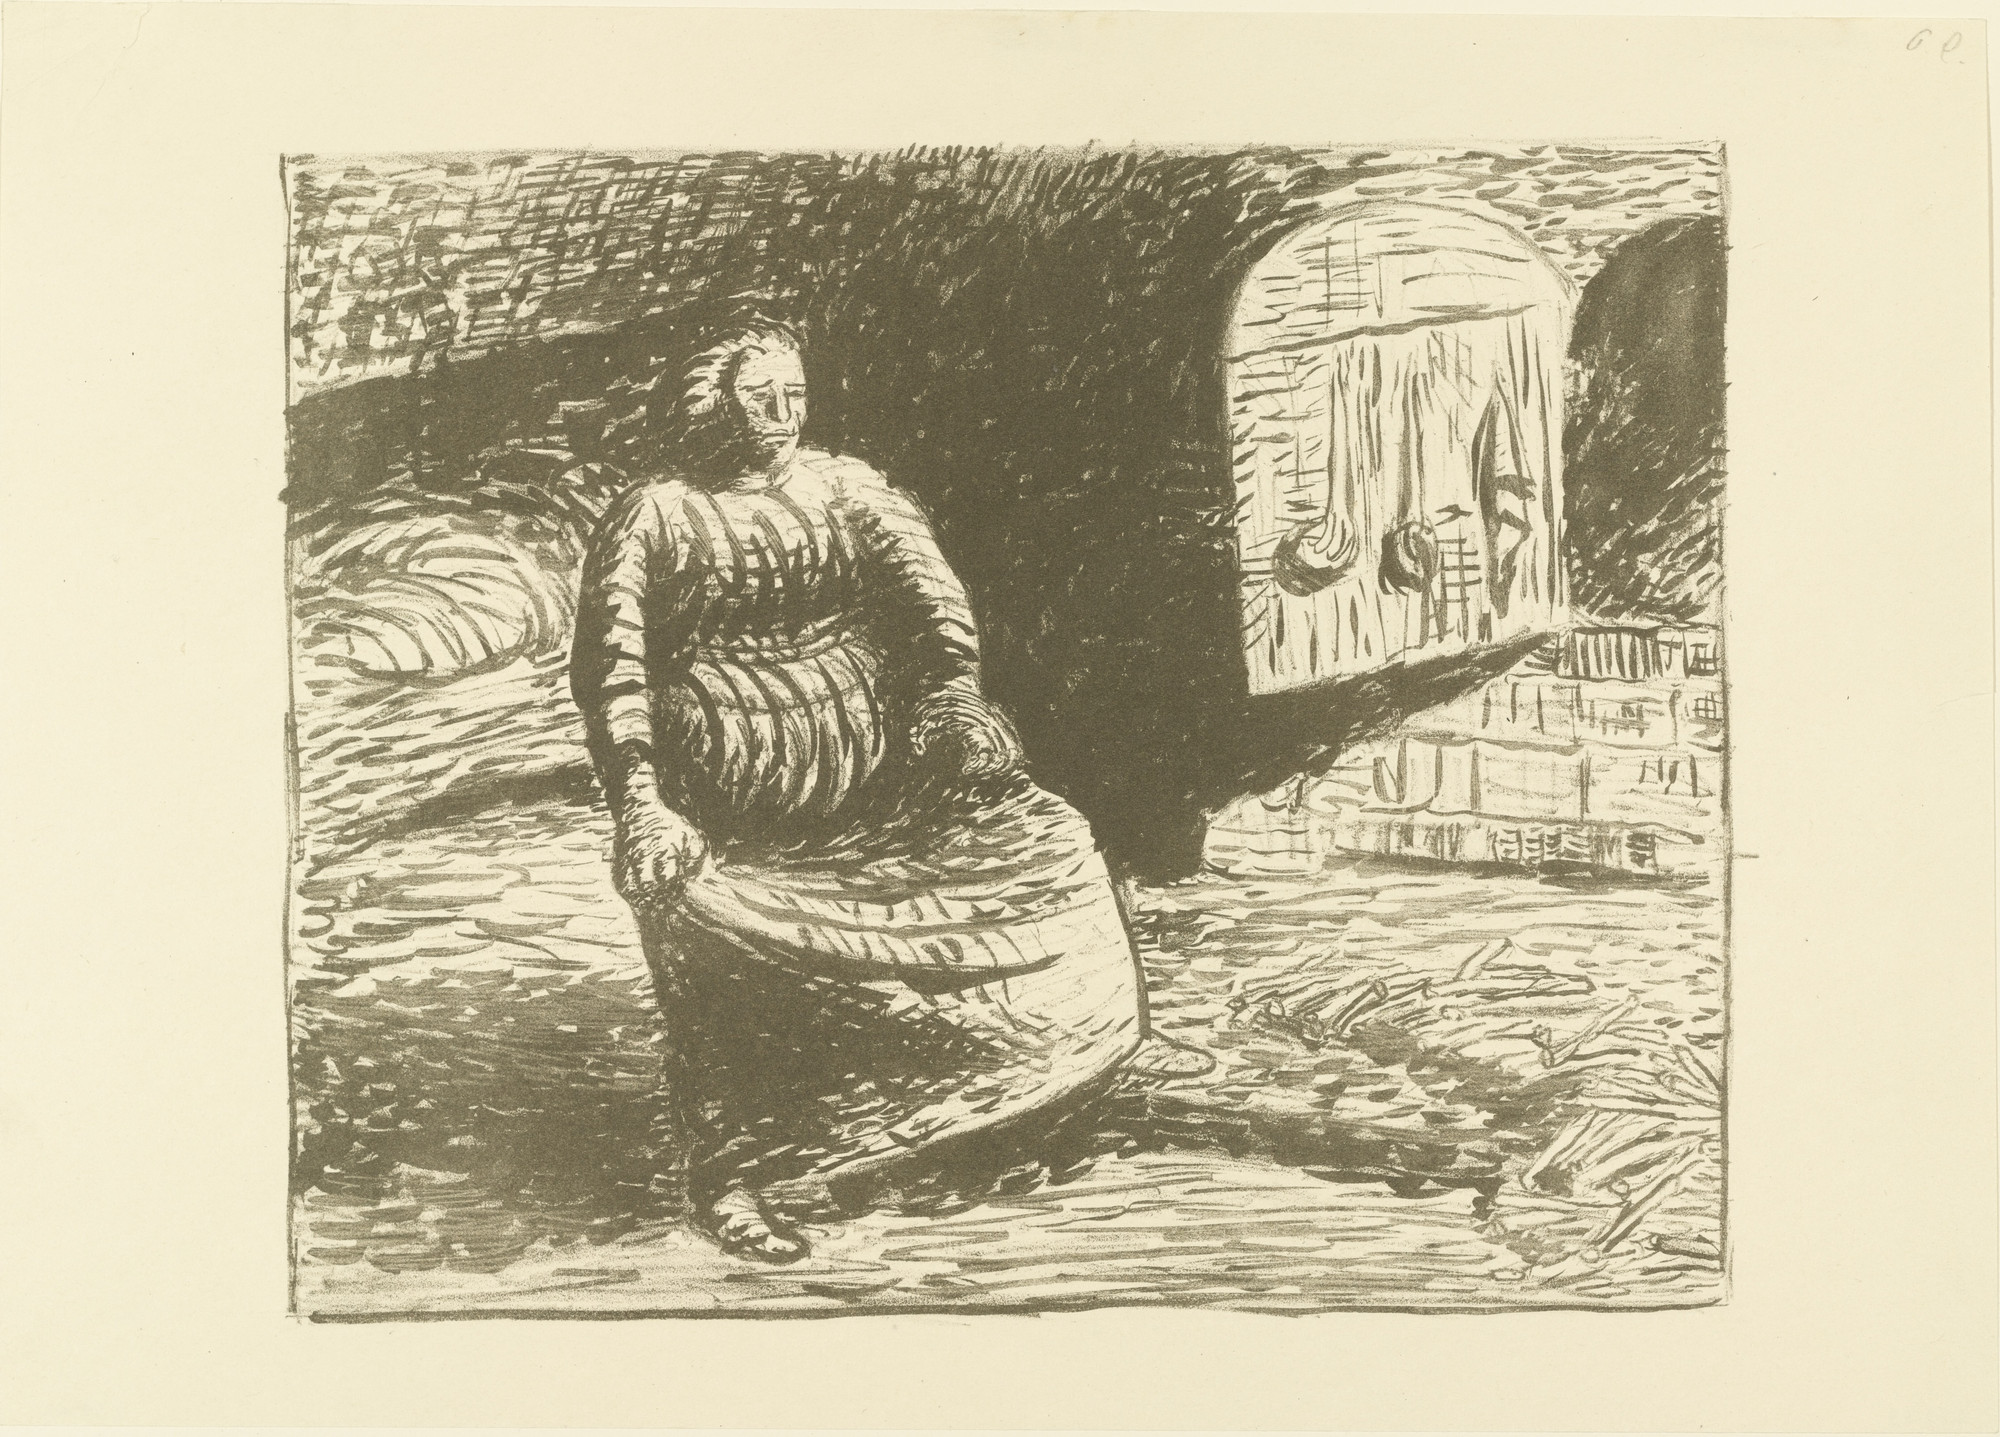 Ernst Barlach. The Woman at the Hearth (Die Frau am Herd) for the portfolio The Dead Day (Der tote Tag). (1910-11, published 1912)